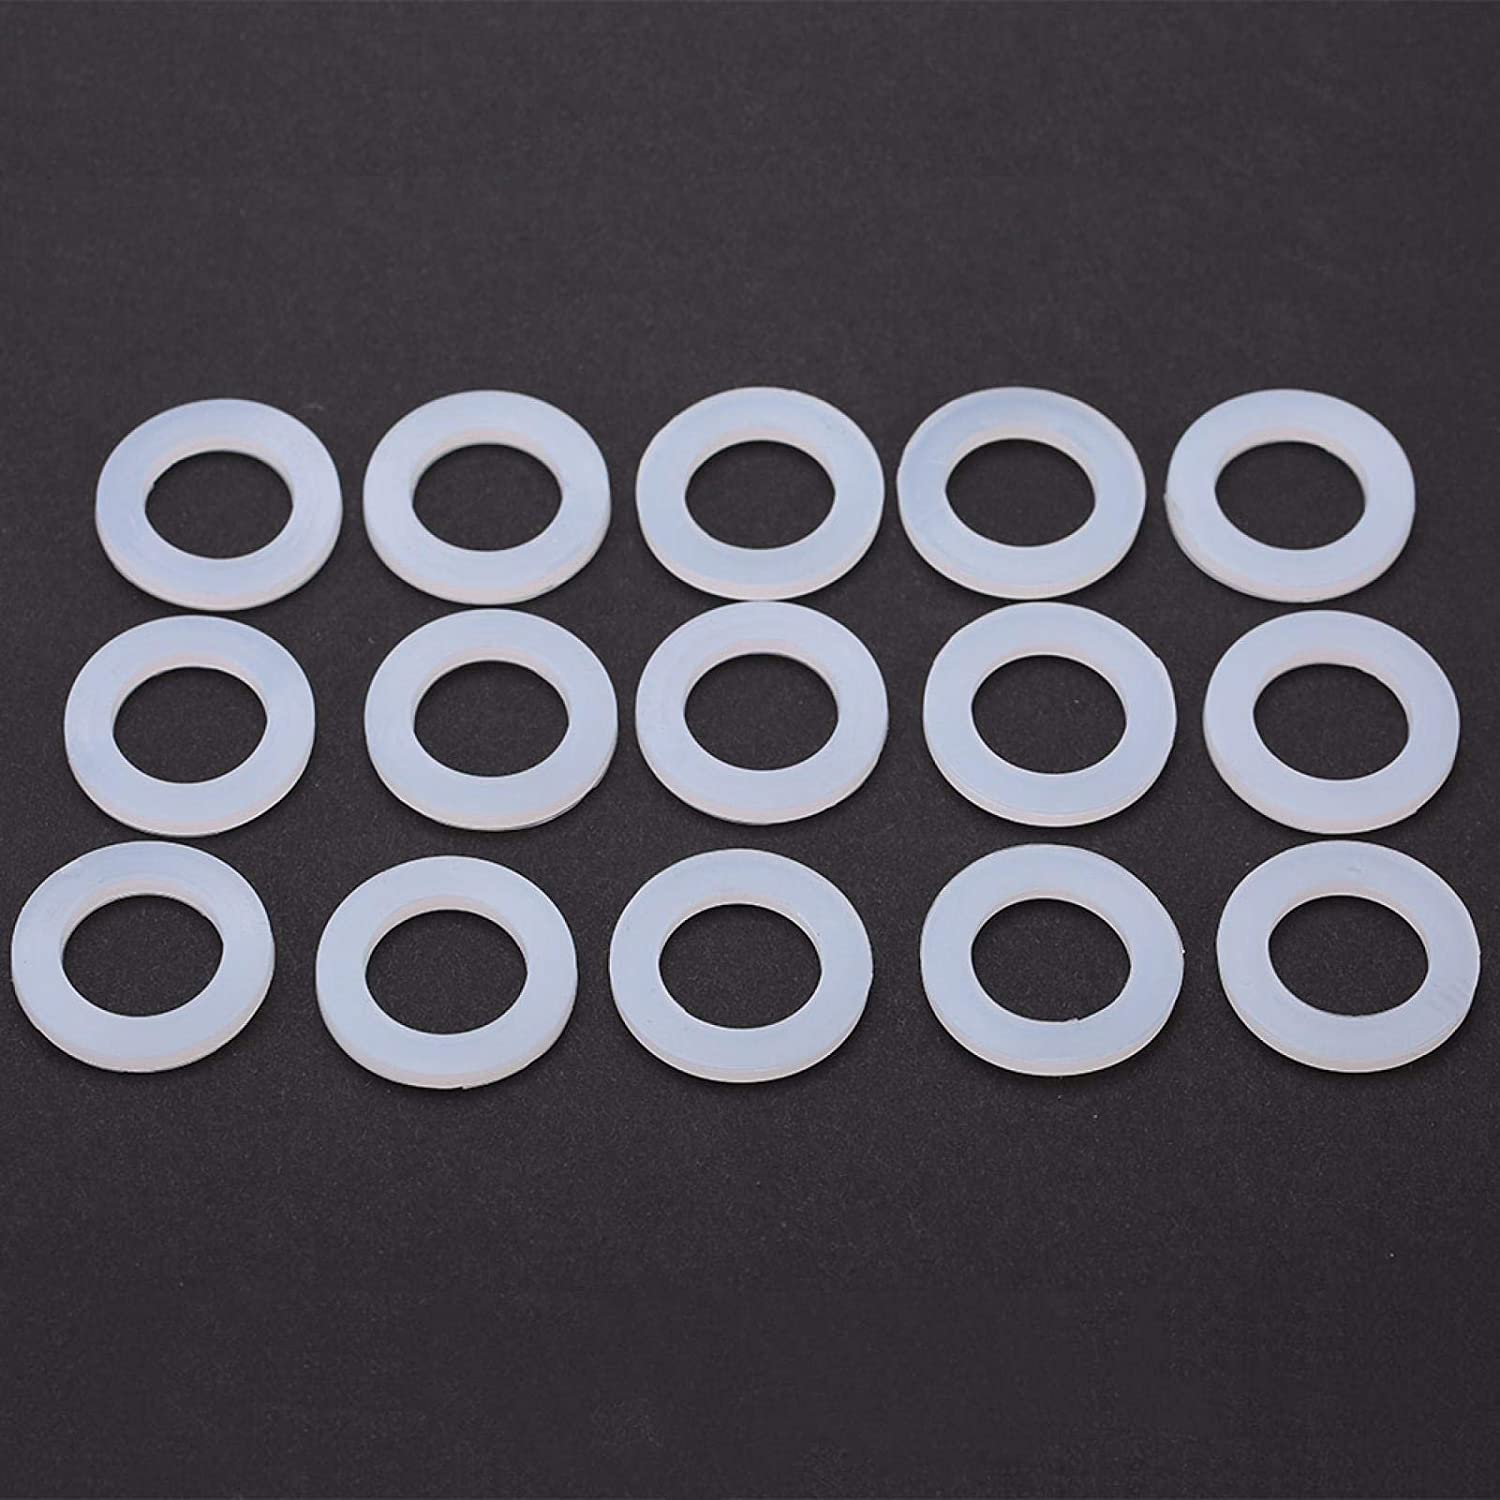 Silicone Sealing Rings,15Pcs O-rings Water Heater Seal Silicon Flat Gaskets Washer for Most Water Heaters,Avirulent Insipidity 1